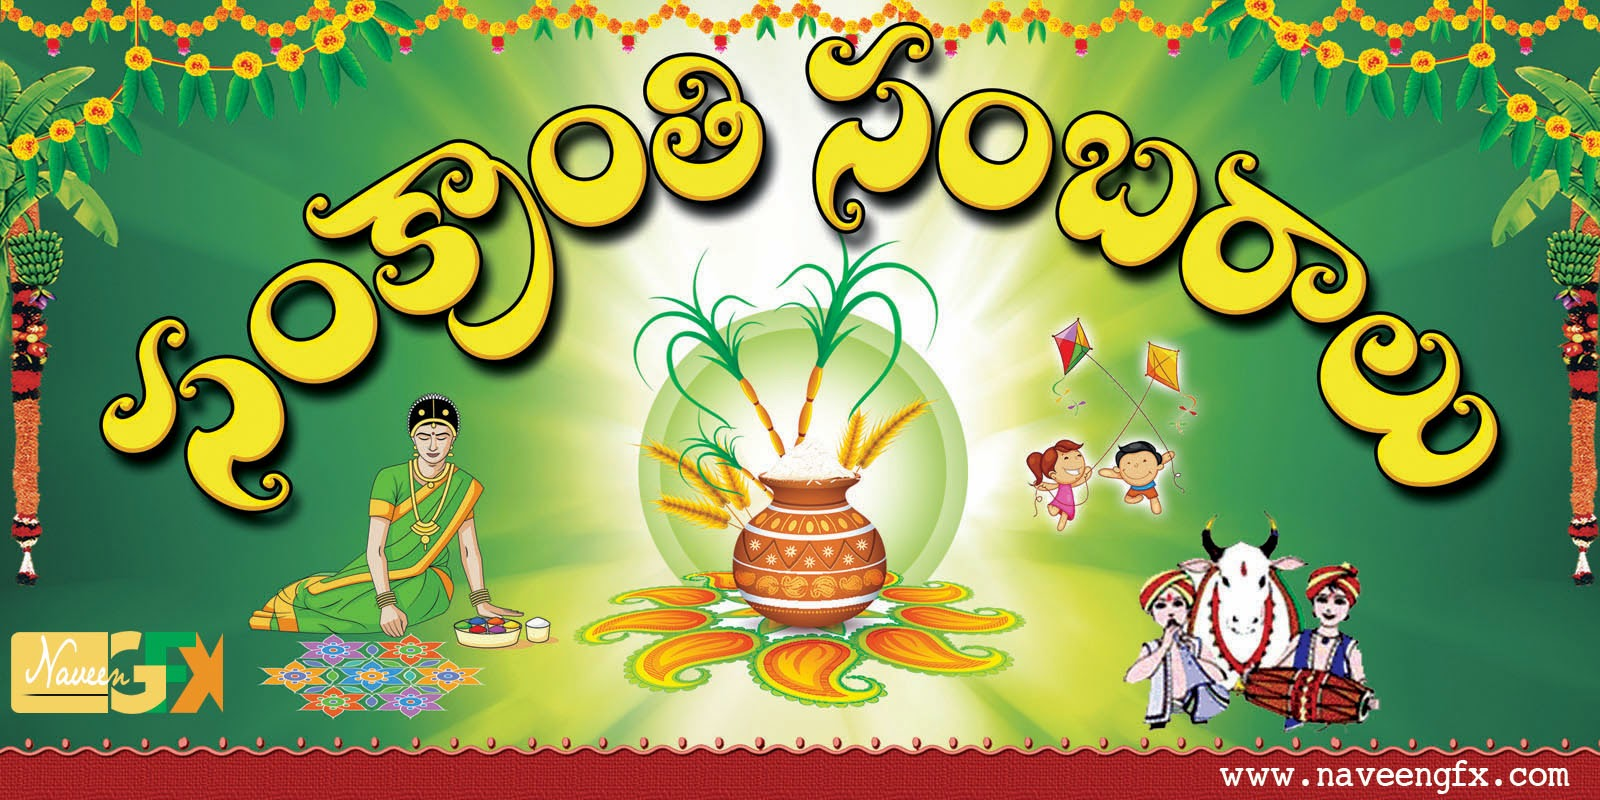 Digital banner design for psd files - Happy Sankranti Telugu Digital Banner Design Template Online